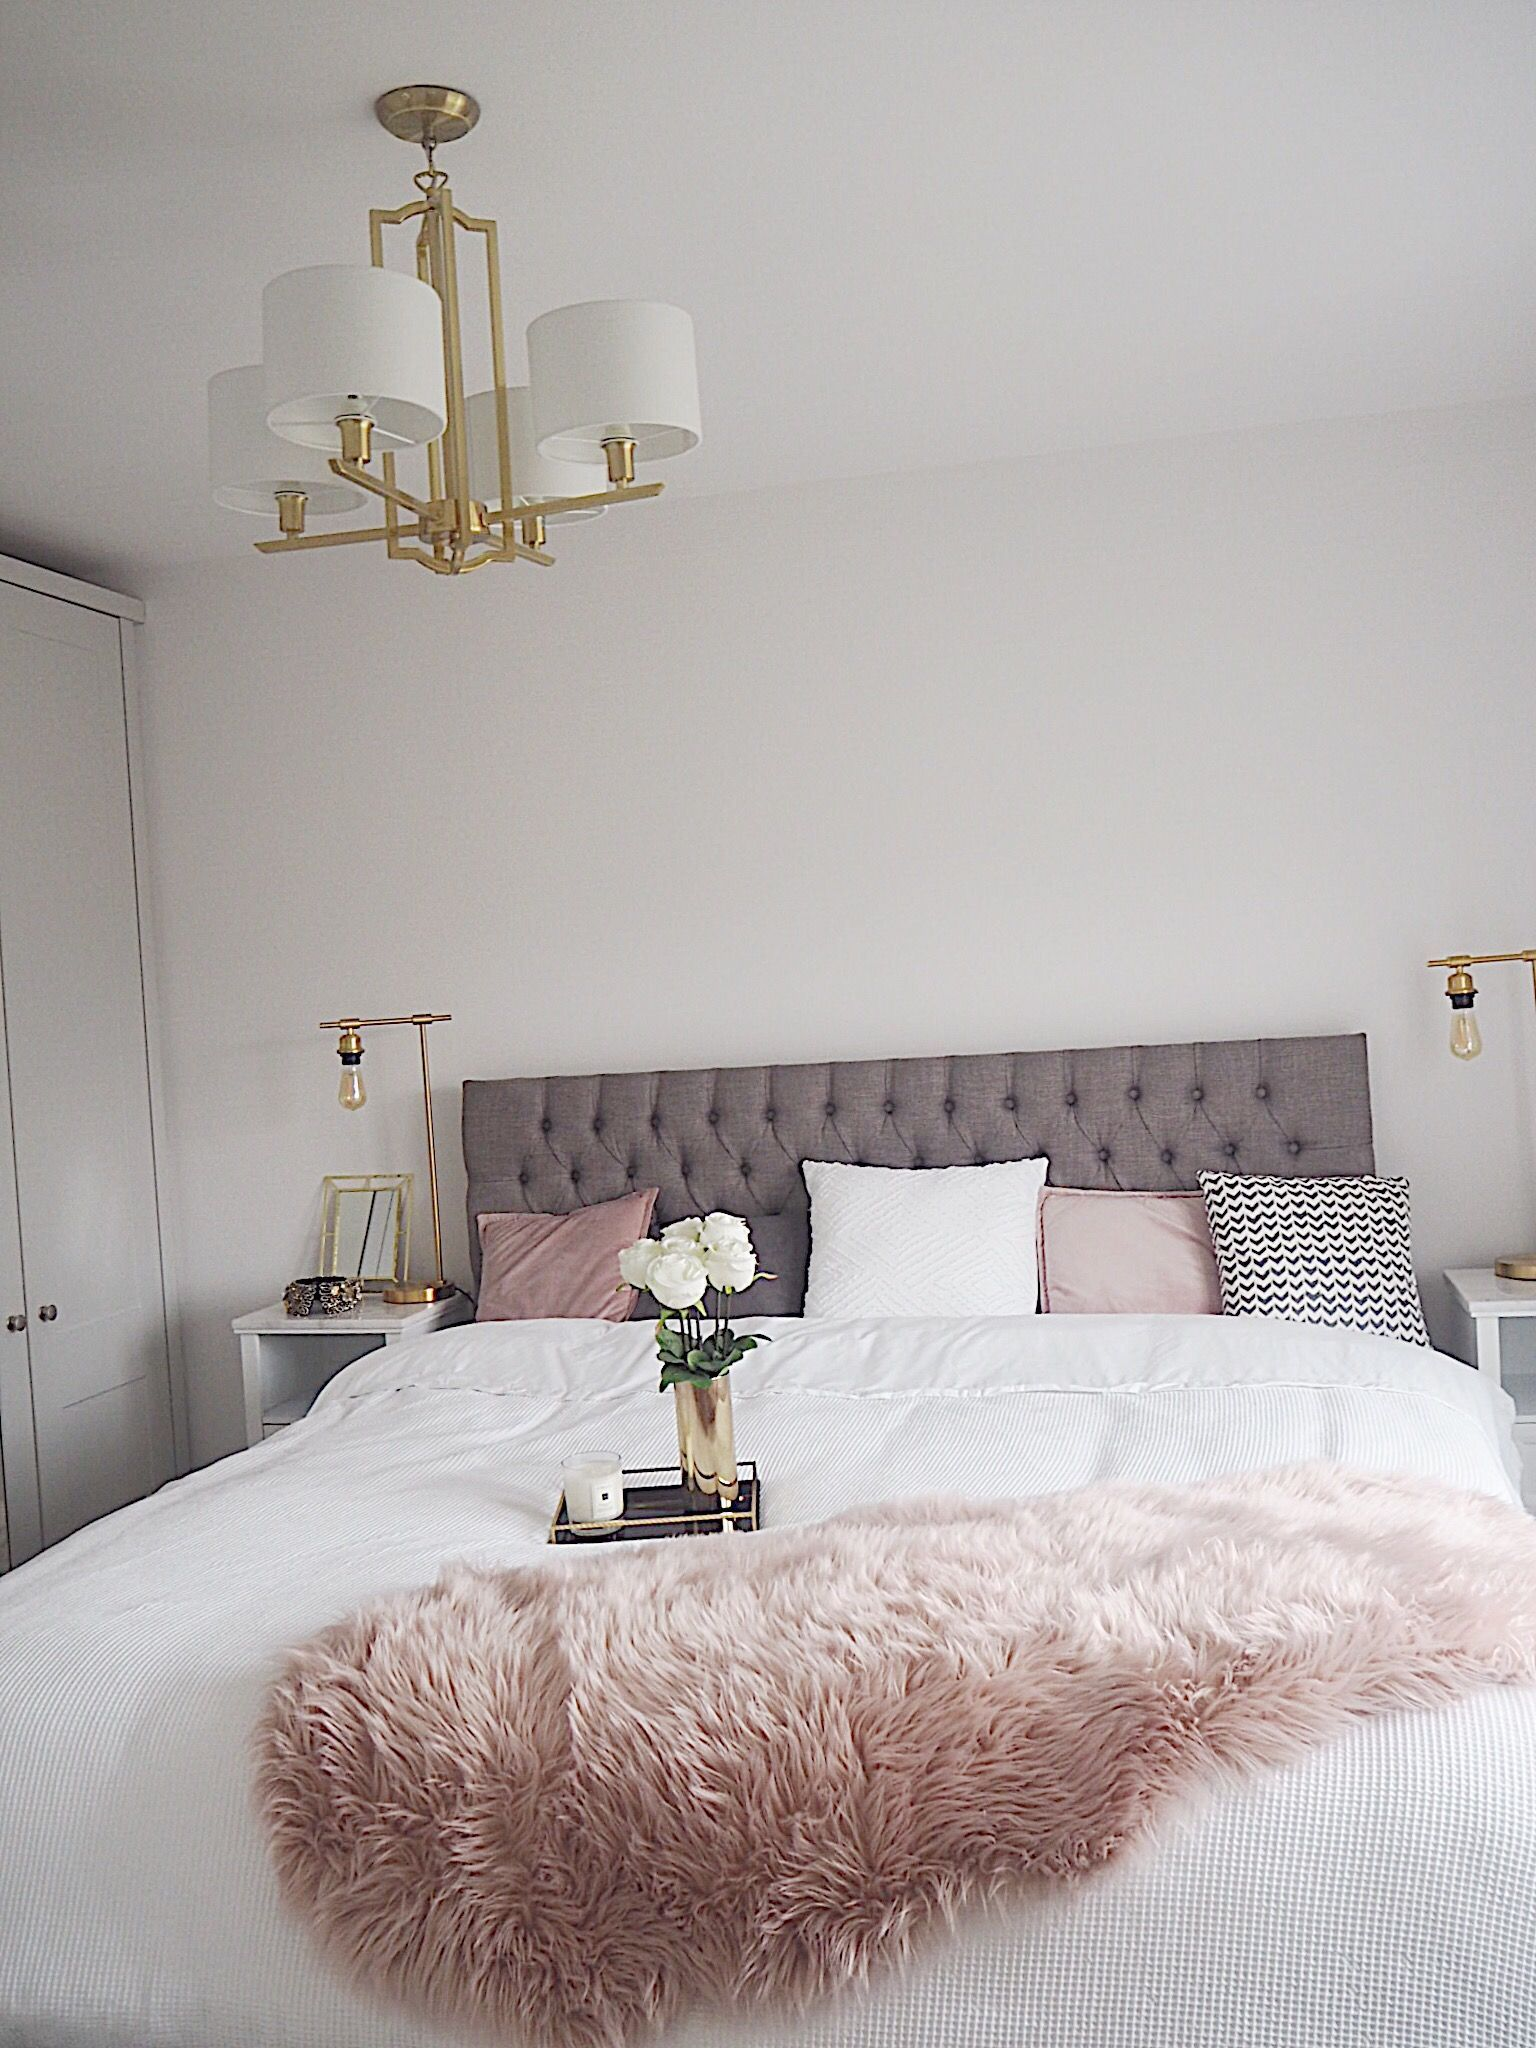 highest rated incredible and amazing baroque bedroom set on amazon pink bedroom decor pink on grey and light pink bedroom decorating ideas id=81102